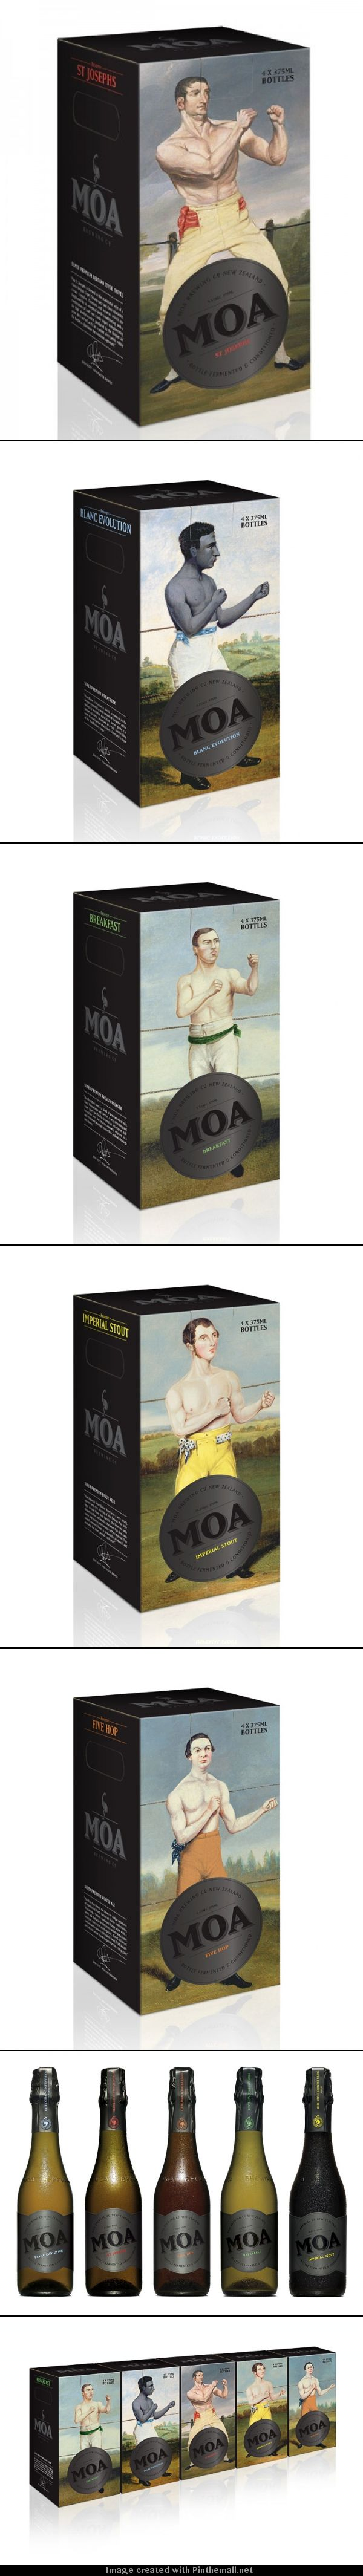 Great pics of #Olympic boxers on this #beer #packaging PD - created via http://www.ohbeautifulbeer.com/2011/10/moa-olympic-packaging/